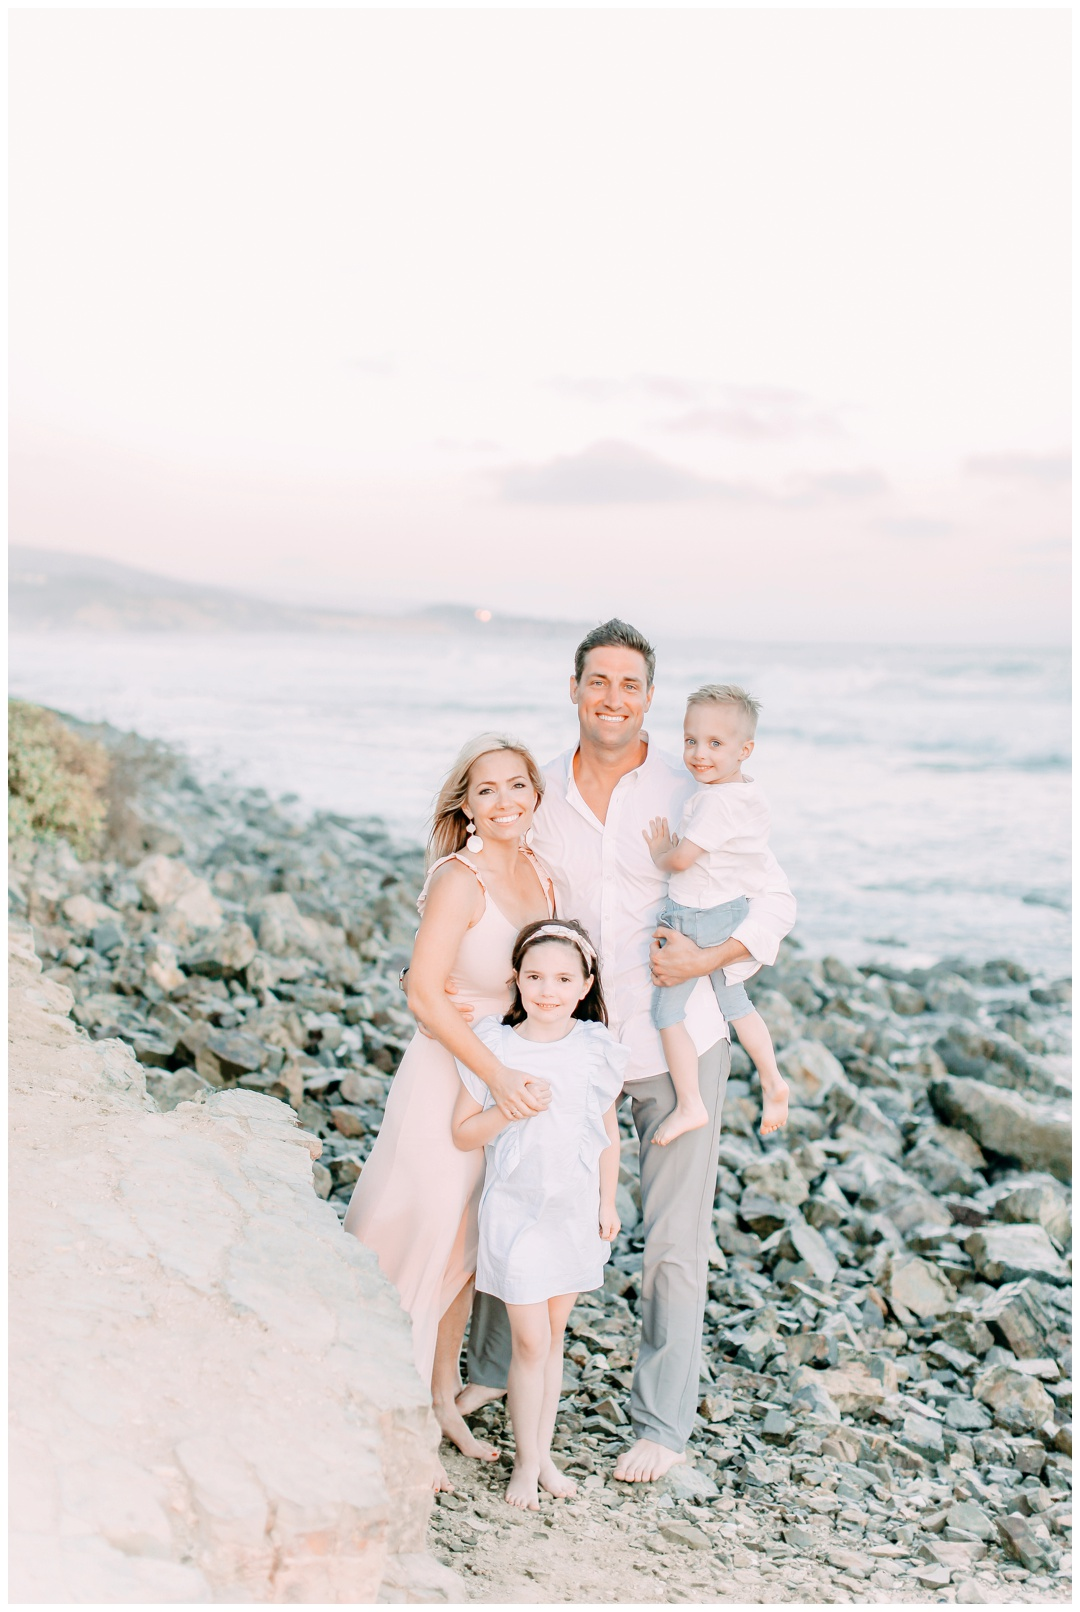 Newport_Beach_Family_Photographer_Orange_County_Family_Photography_Cori_Kleckner_Photography_Orange_County_Family_Photographer_Beach_Family_Session_1169.jpg